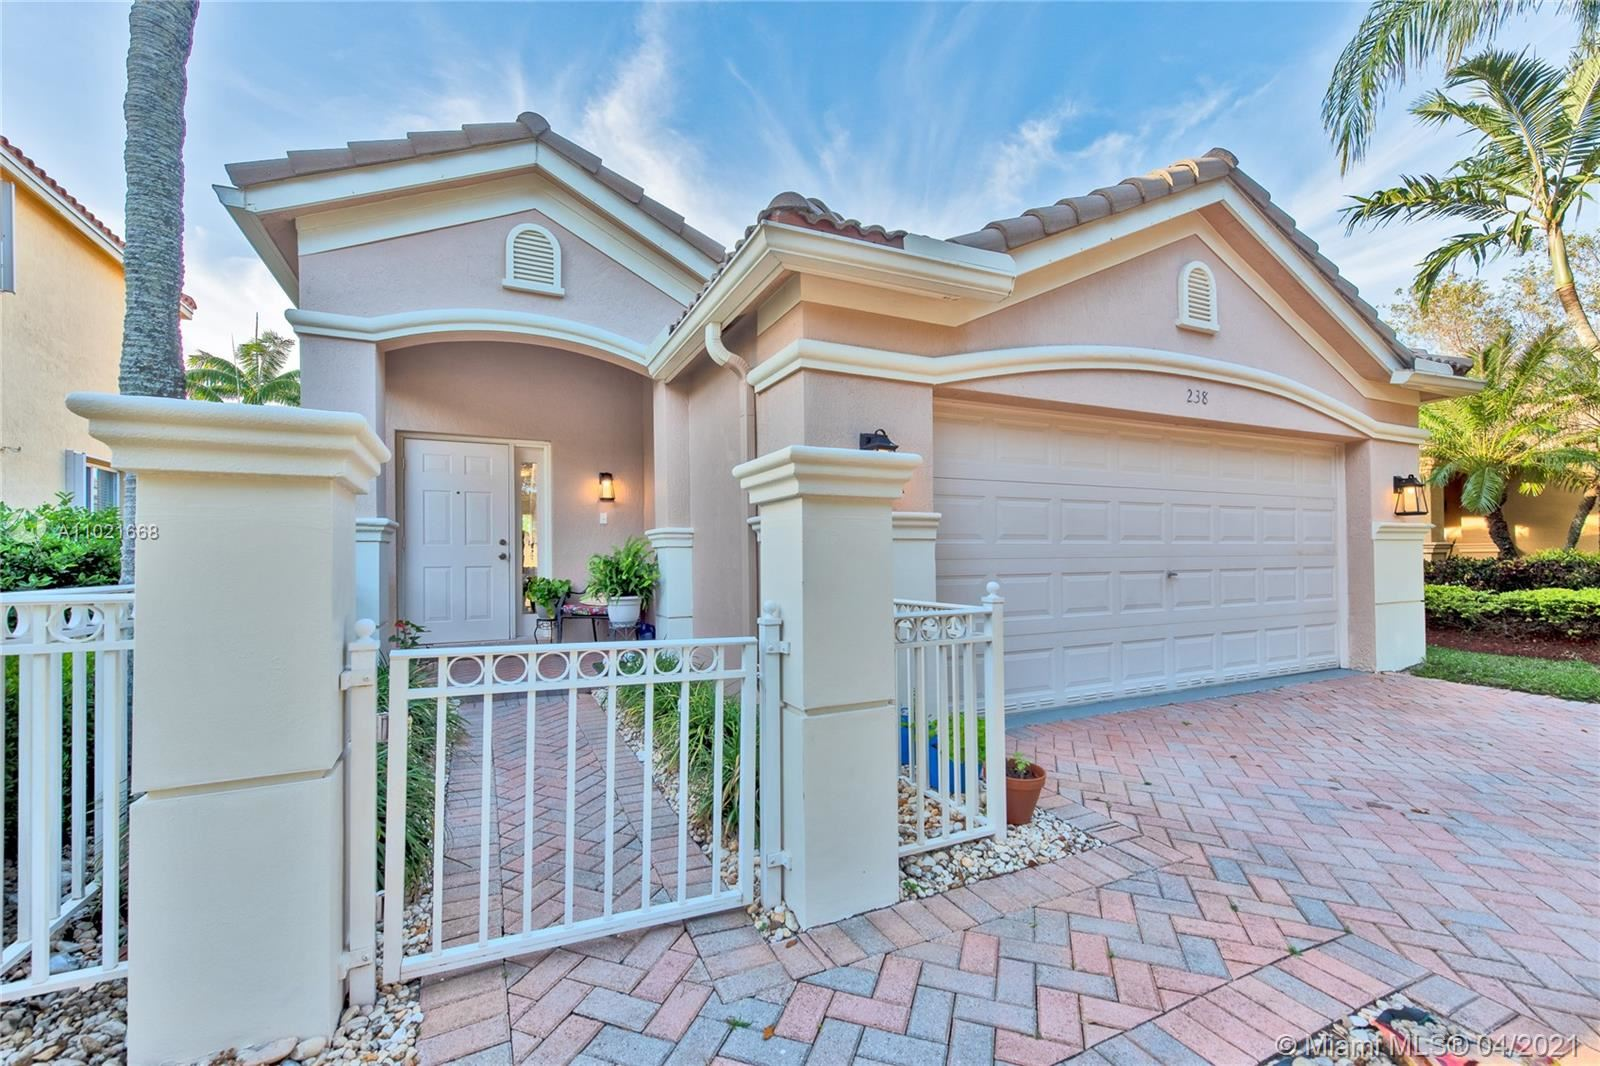 238 Conservation Dr, Weston, FL 33327 - #: A11021668